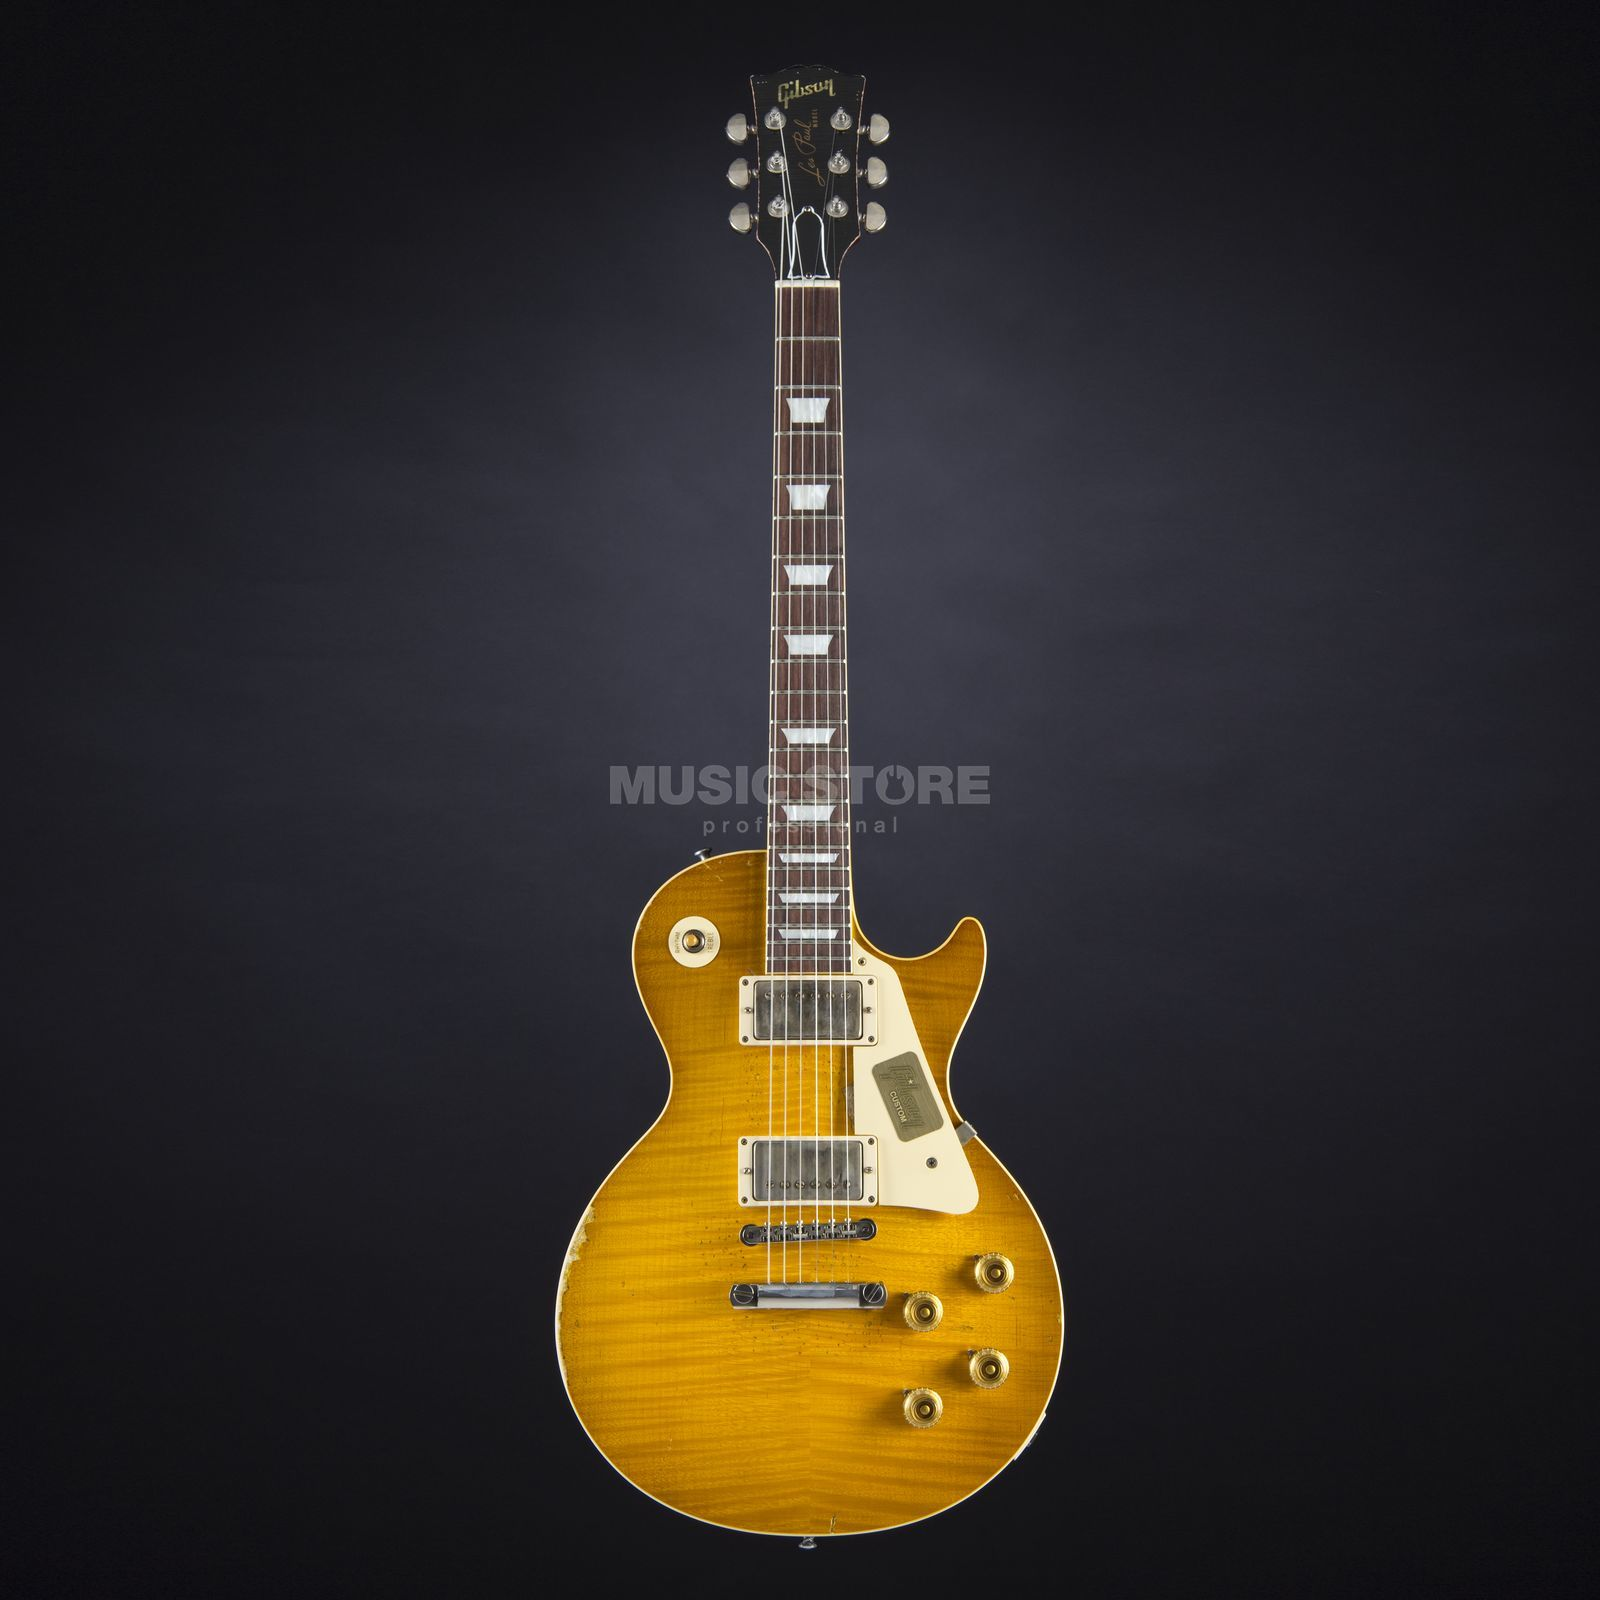 Gibson Ace Frehley 1959 Les Paul Standard Aged/Signed, #Ace Frehley 34 Produktbild